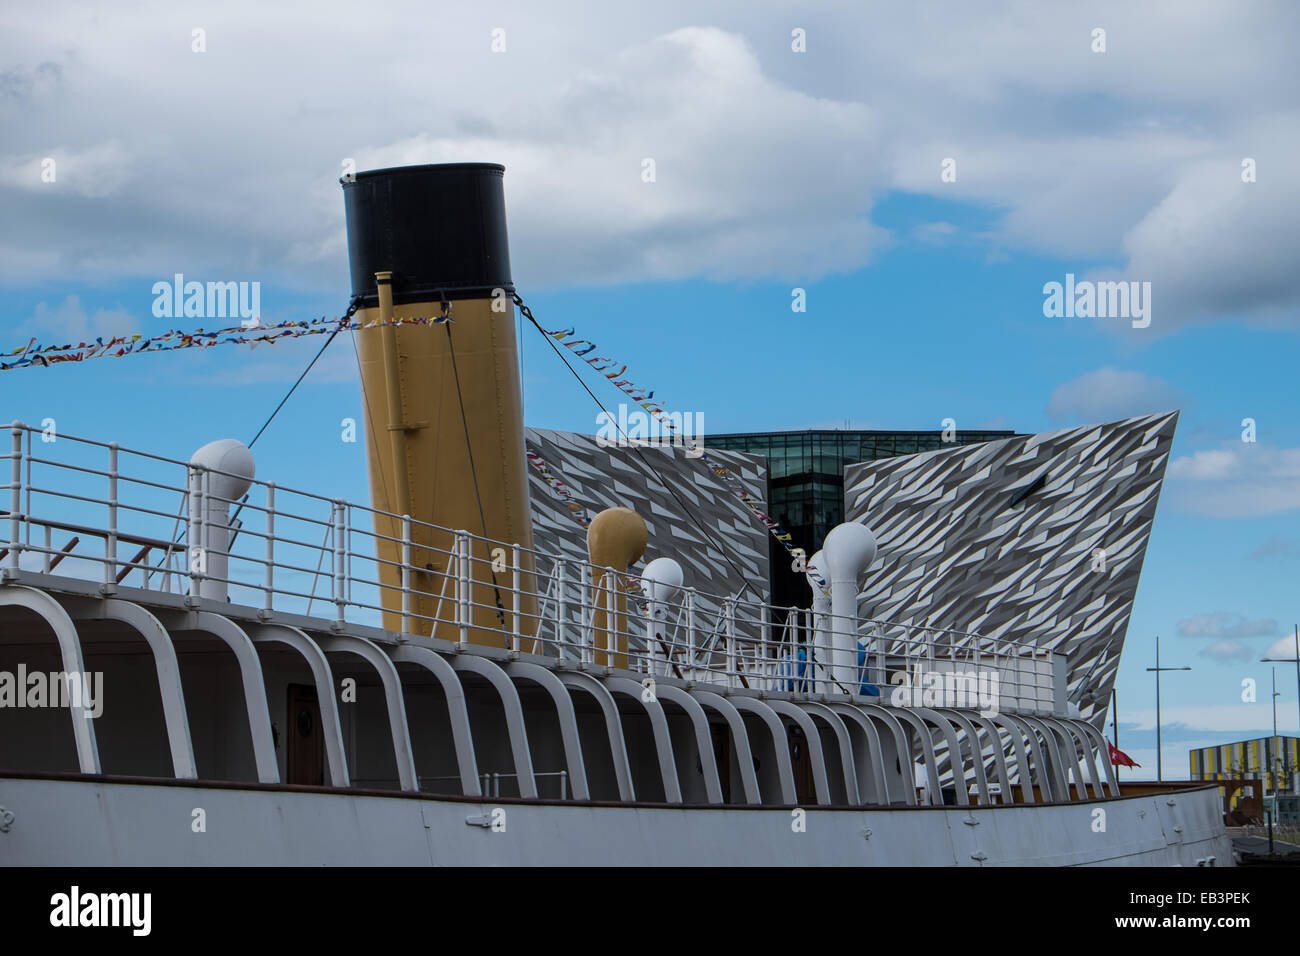 SS Nomadic steam ship in Belfast Northern Ireland built by Harland and Wolff with the Titanic museum in the background - Stock Image